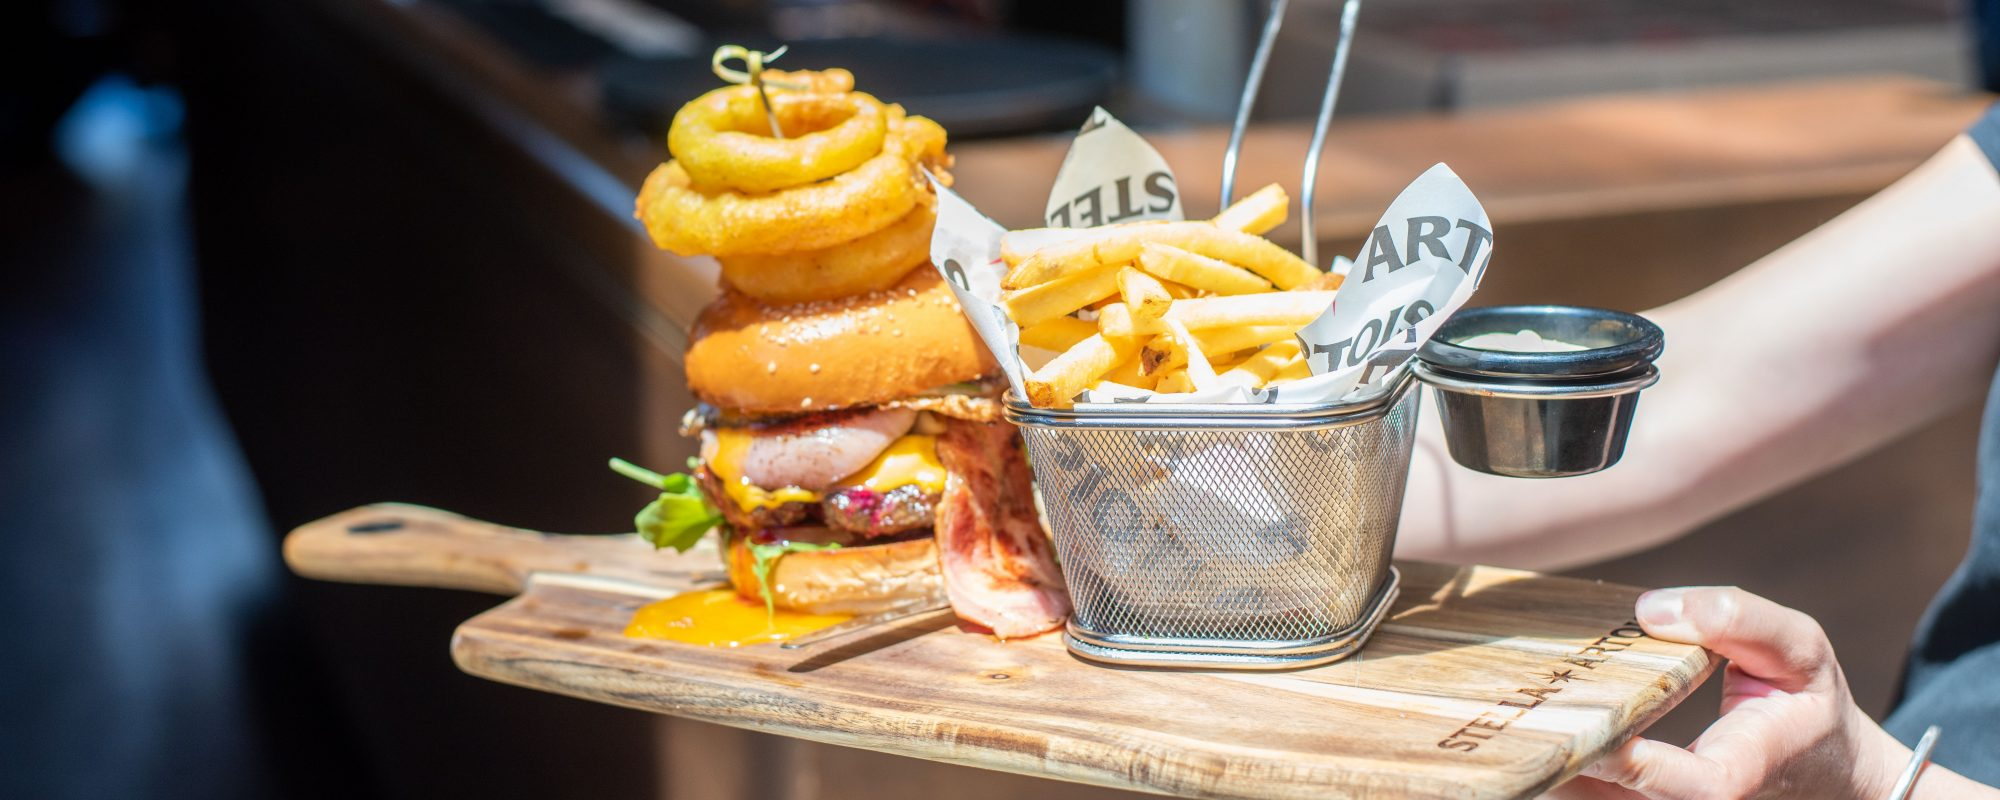 The Wembley Hotel's legendary Home Made Beef Burger